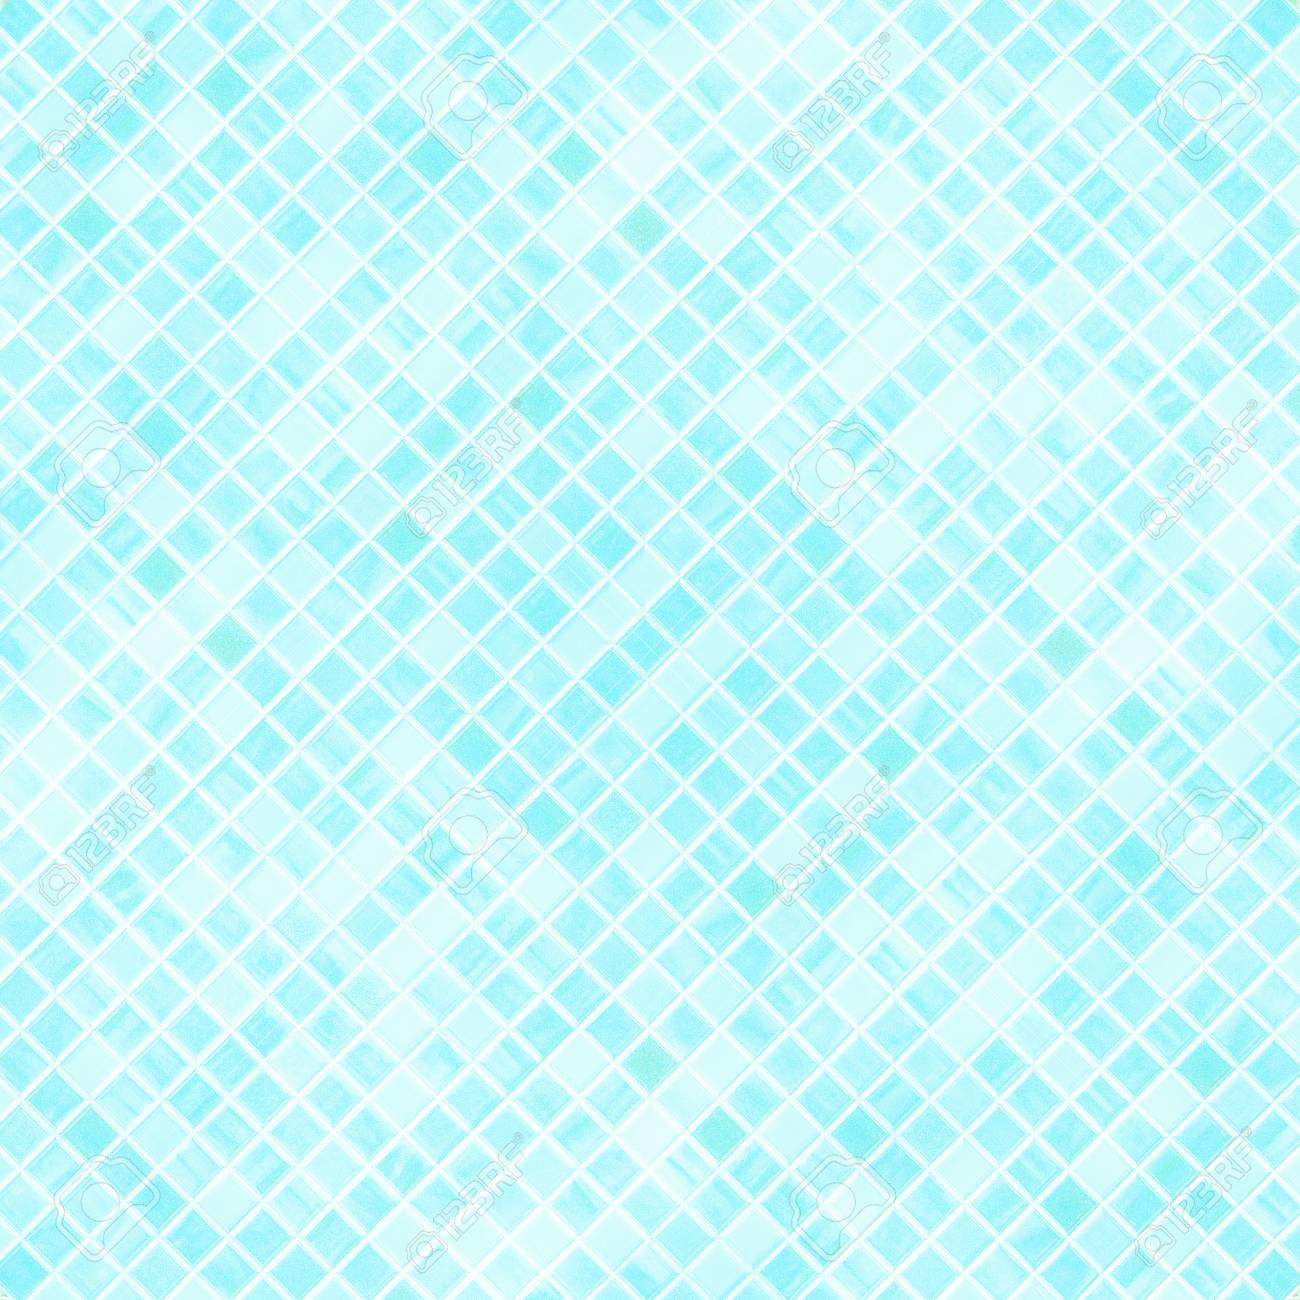 Pastel Blue Color Ceramic Tile Wall Texture Background ,Home.. Stock ...